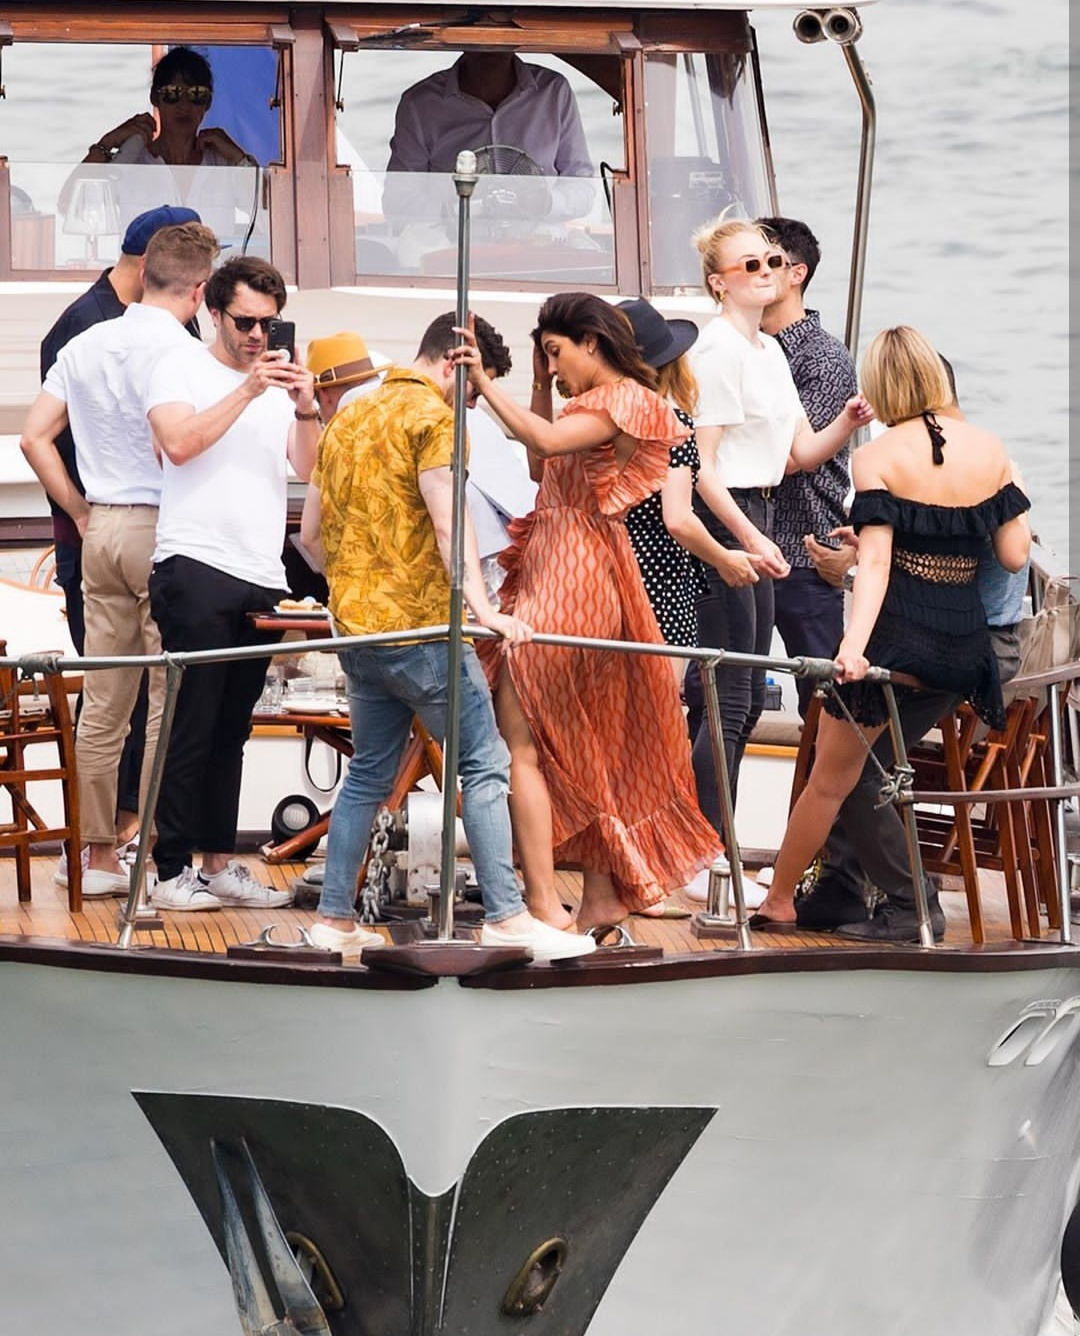 Priyanka Chopra And Nick Jonas' Pictures from the Jonas Parisian Cruise Goes Viral